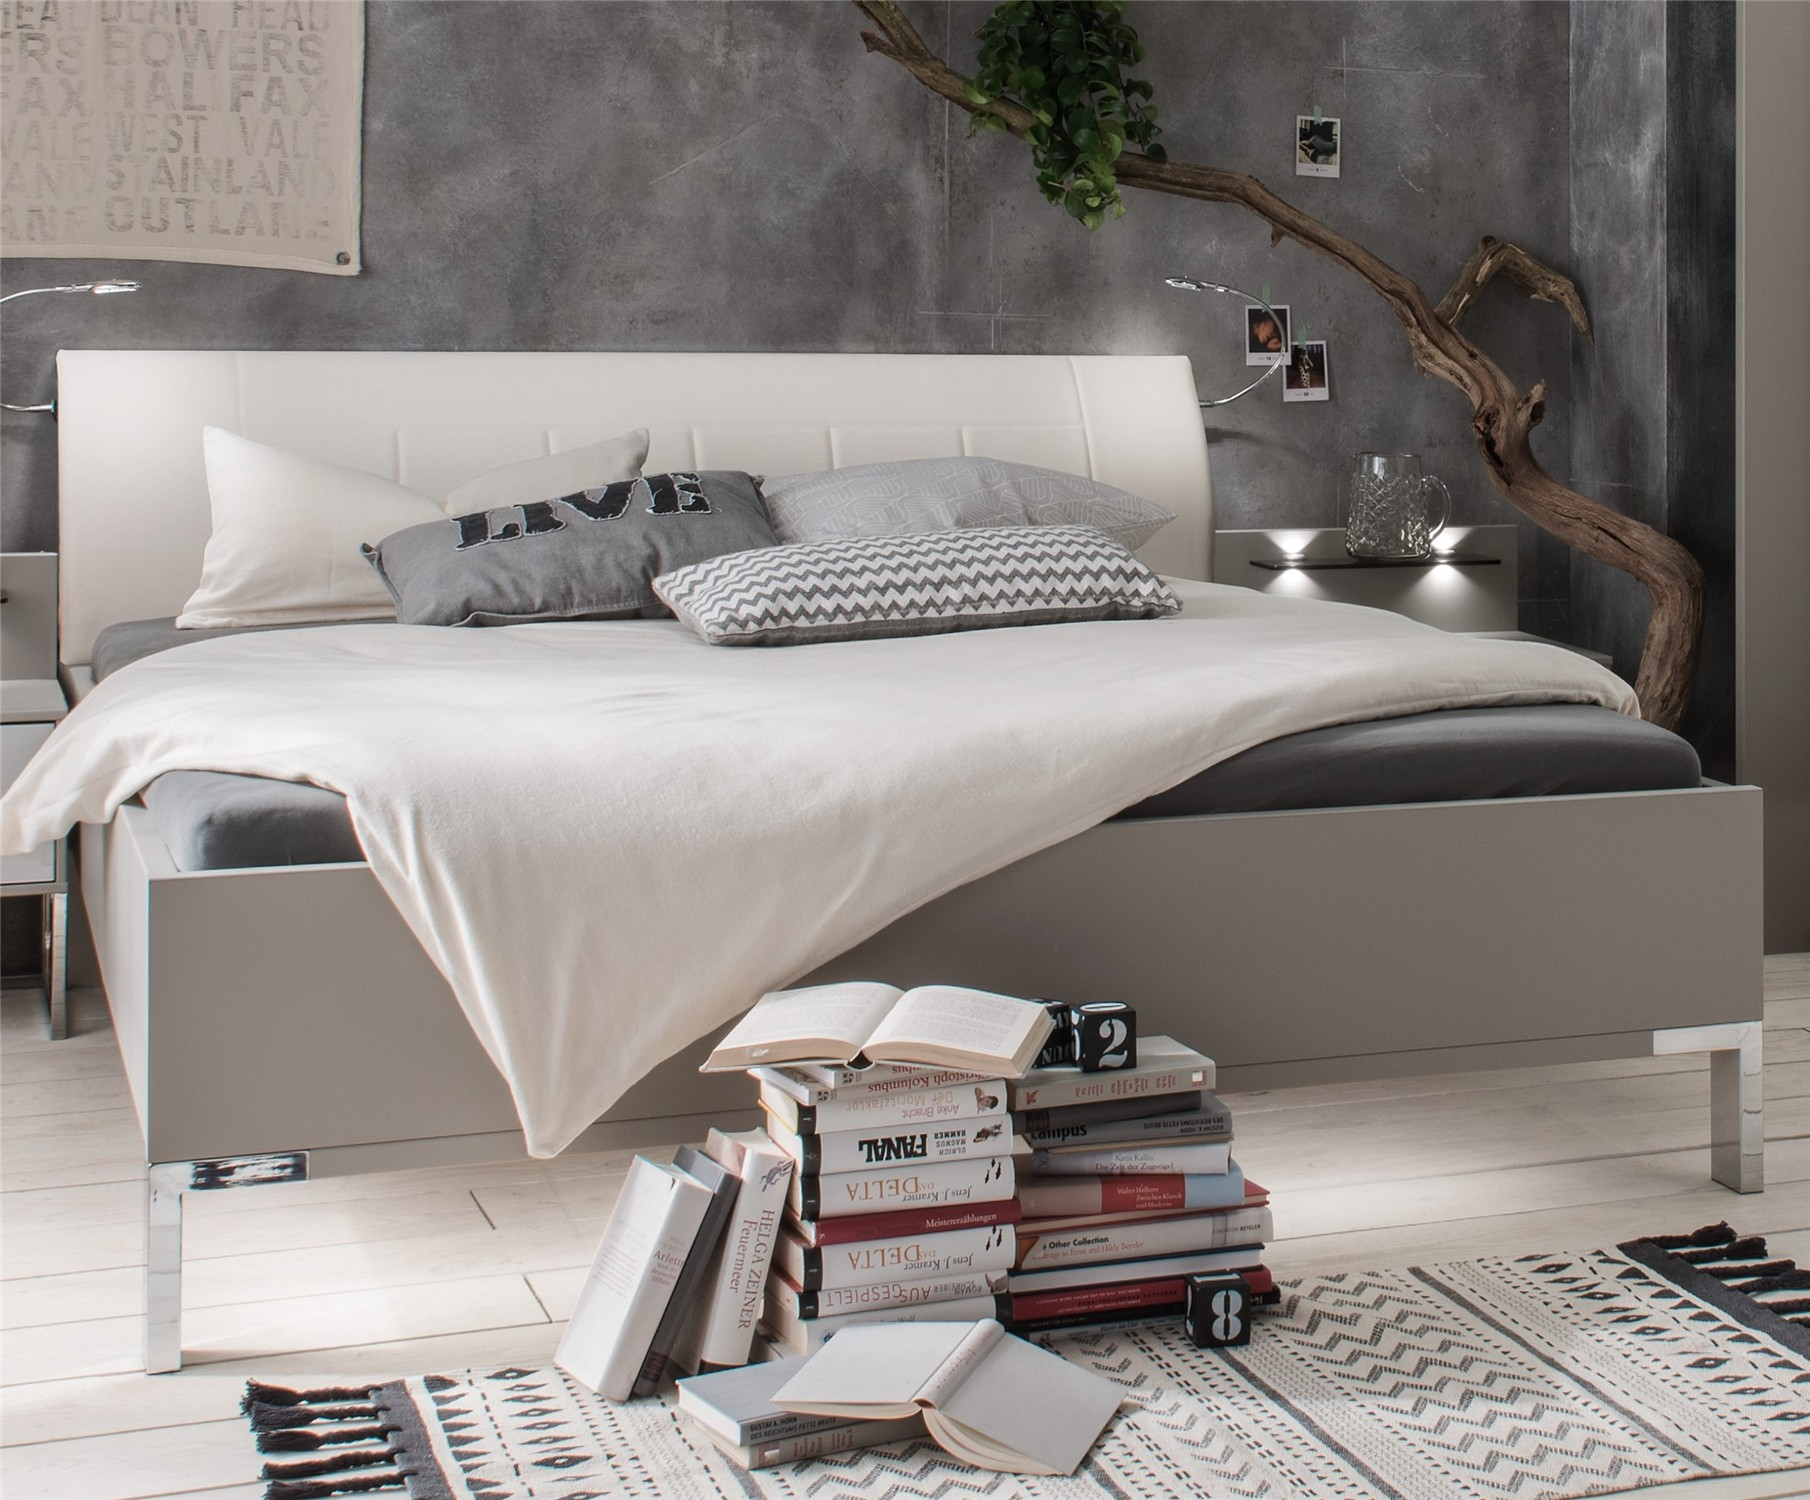 Mars By Stylform  Modern Bed With Faux Leather Headboard